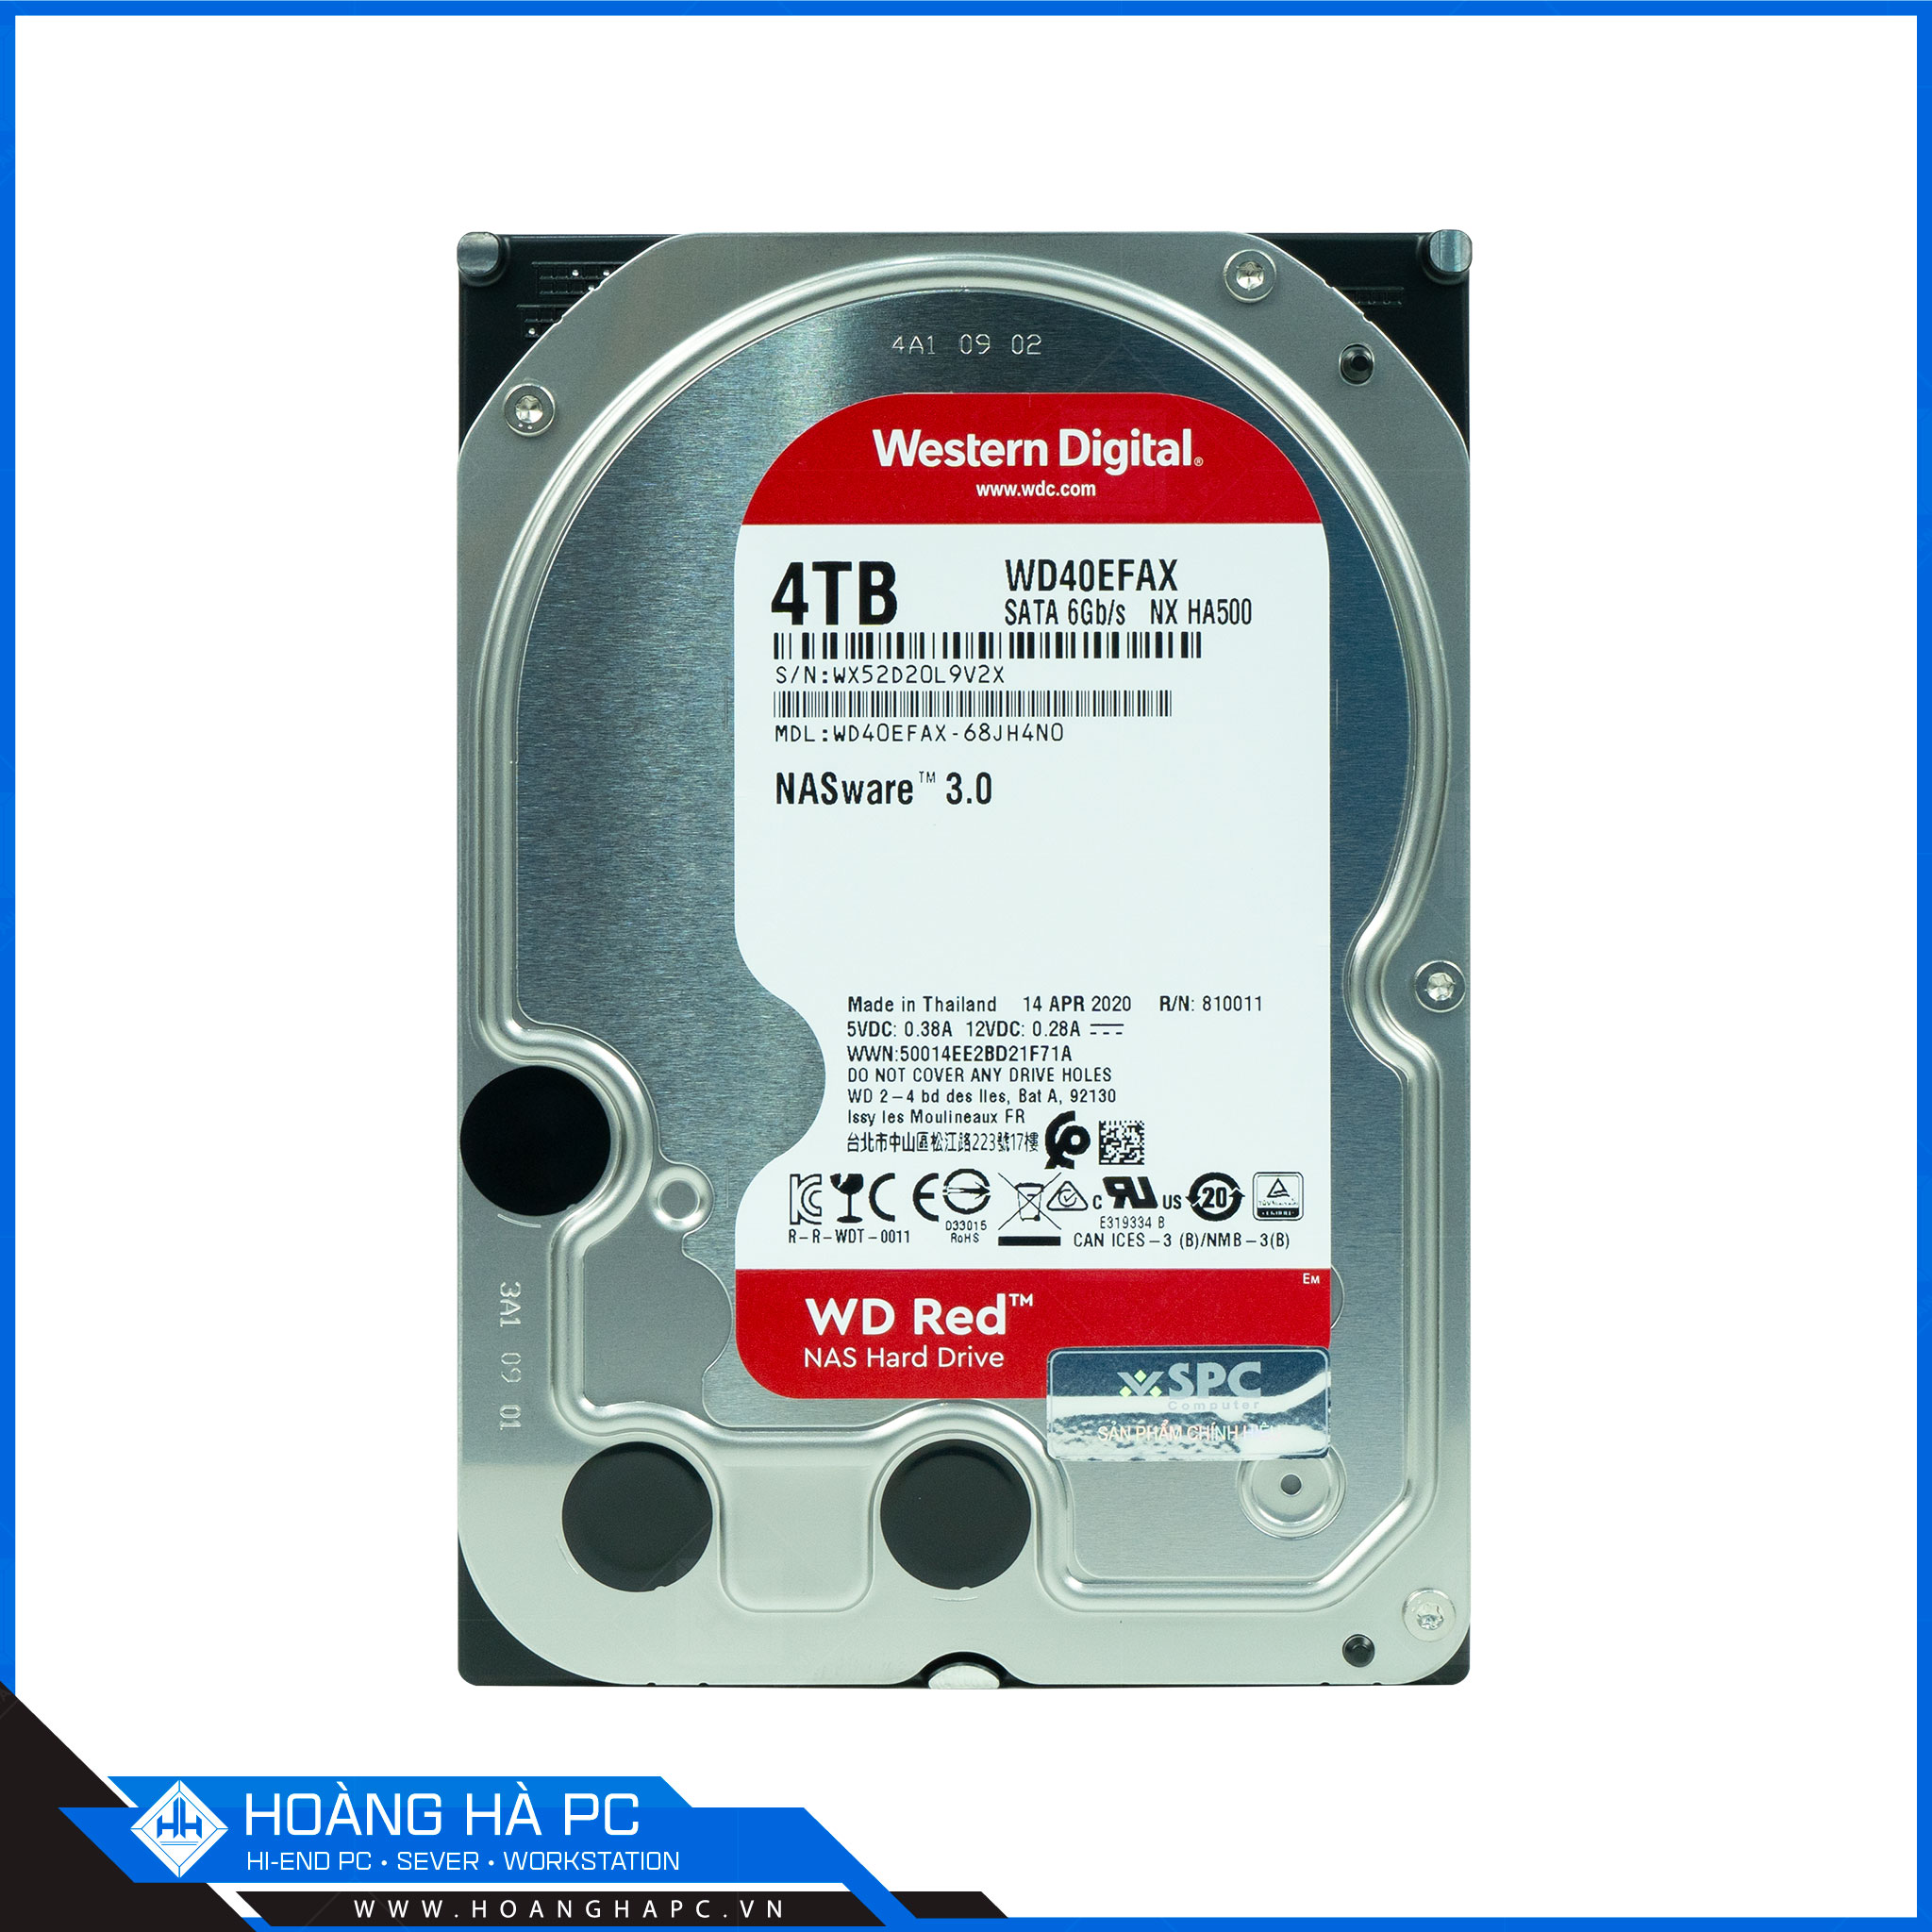 Ổ cứng Western Digital NAS RED 4TB